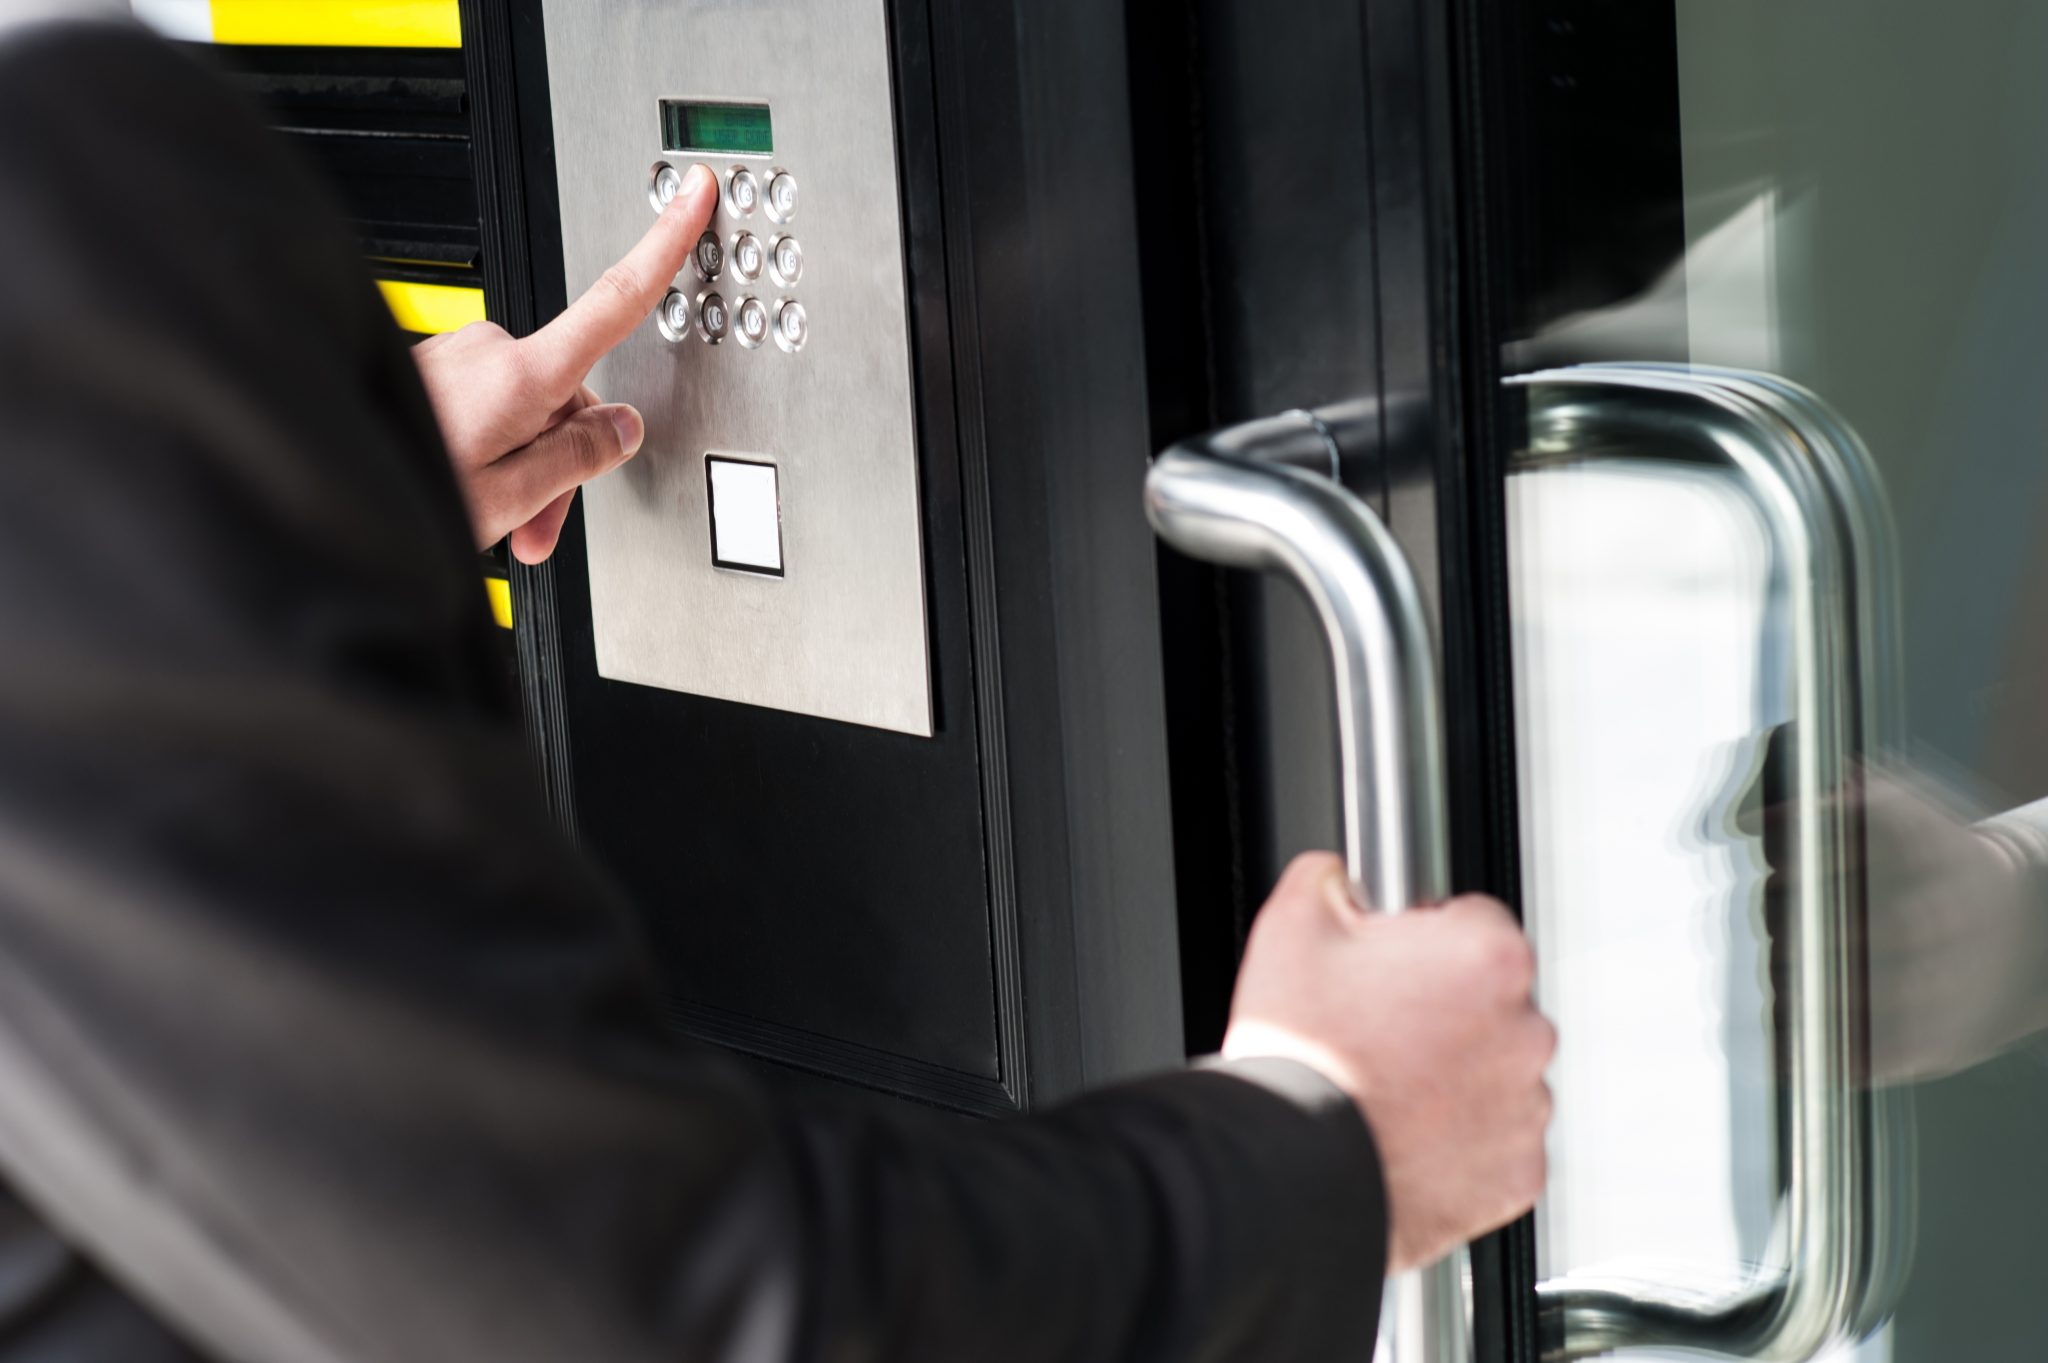 Utilising your access control system